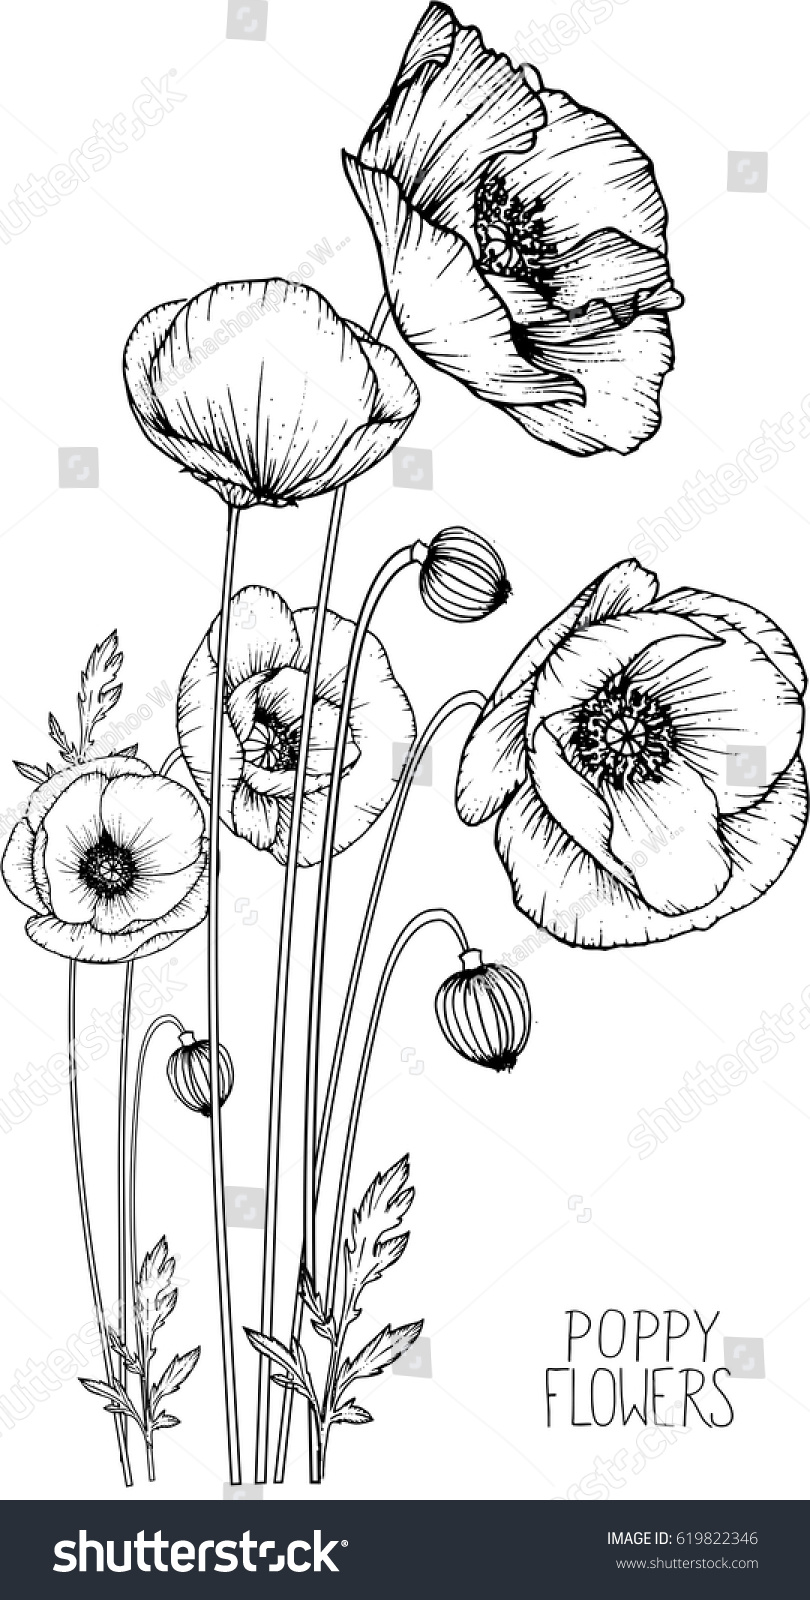 Flowers Drawing Poppy Flower Vector Illustration Stock Vector